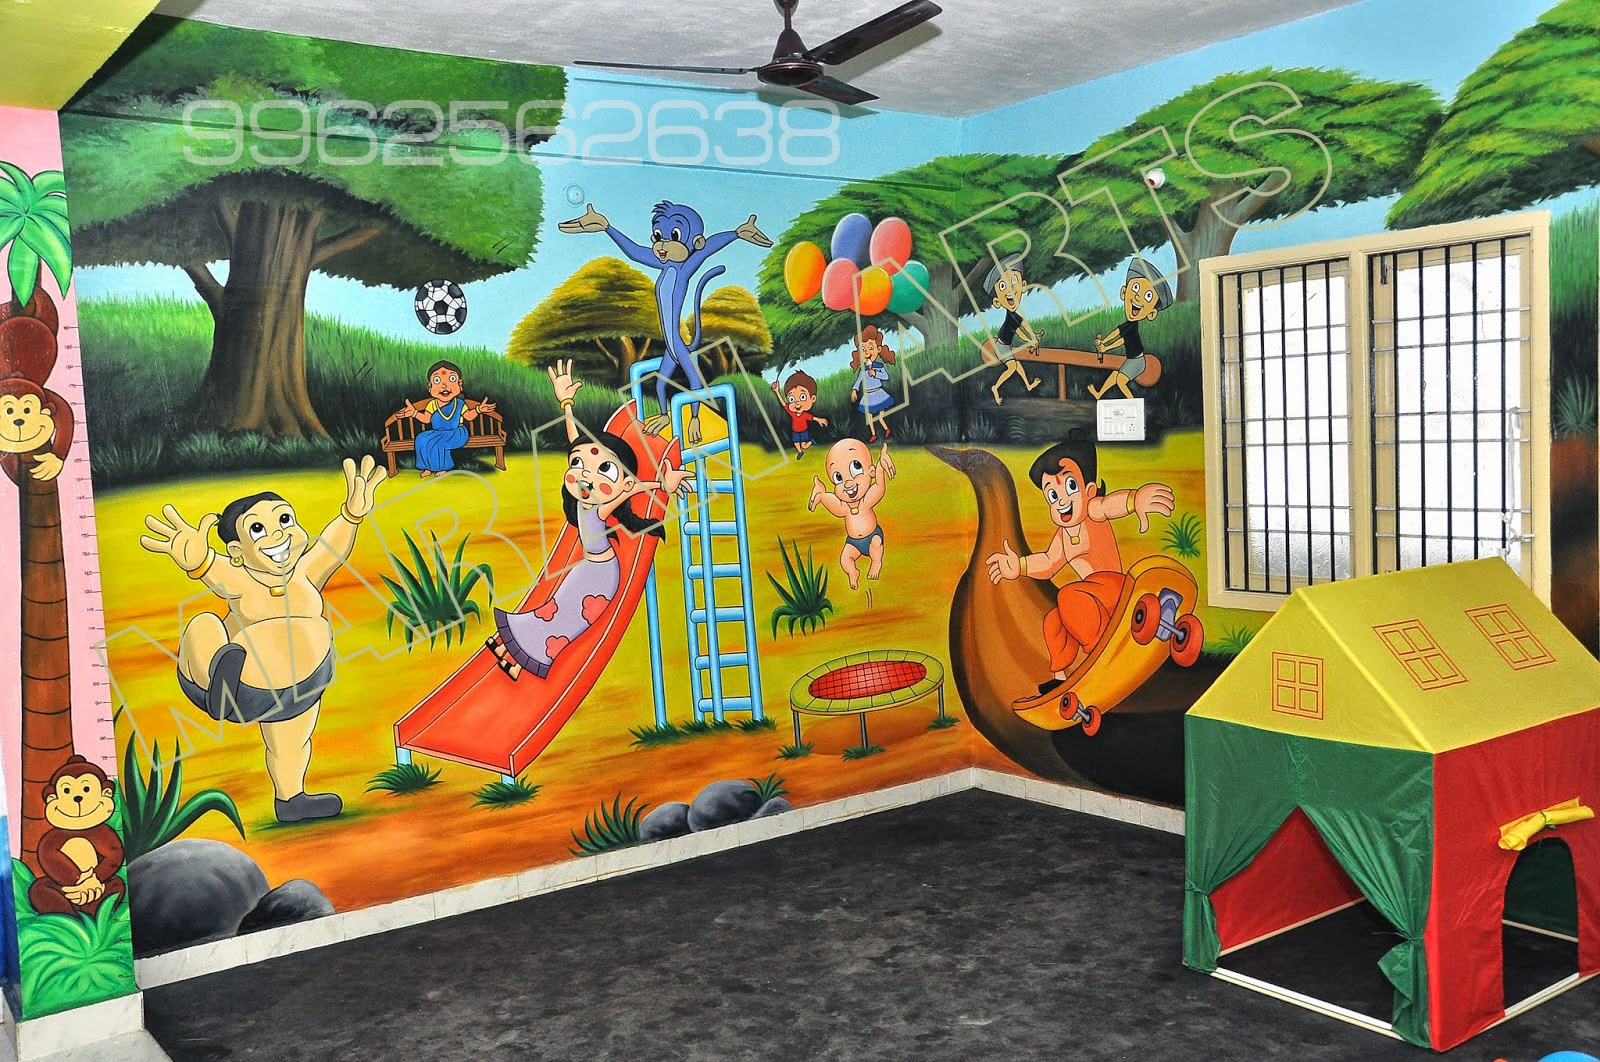 Kids Wall Painting U0026 Cartoon Wall Art For Play Schools In Chennai U0026 Tamil  Nadu) Maranarts